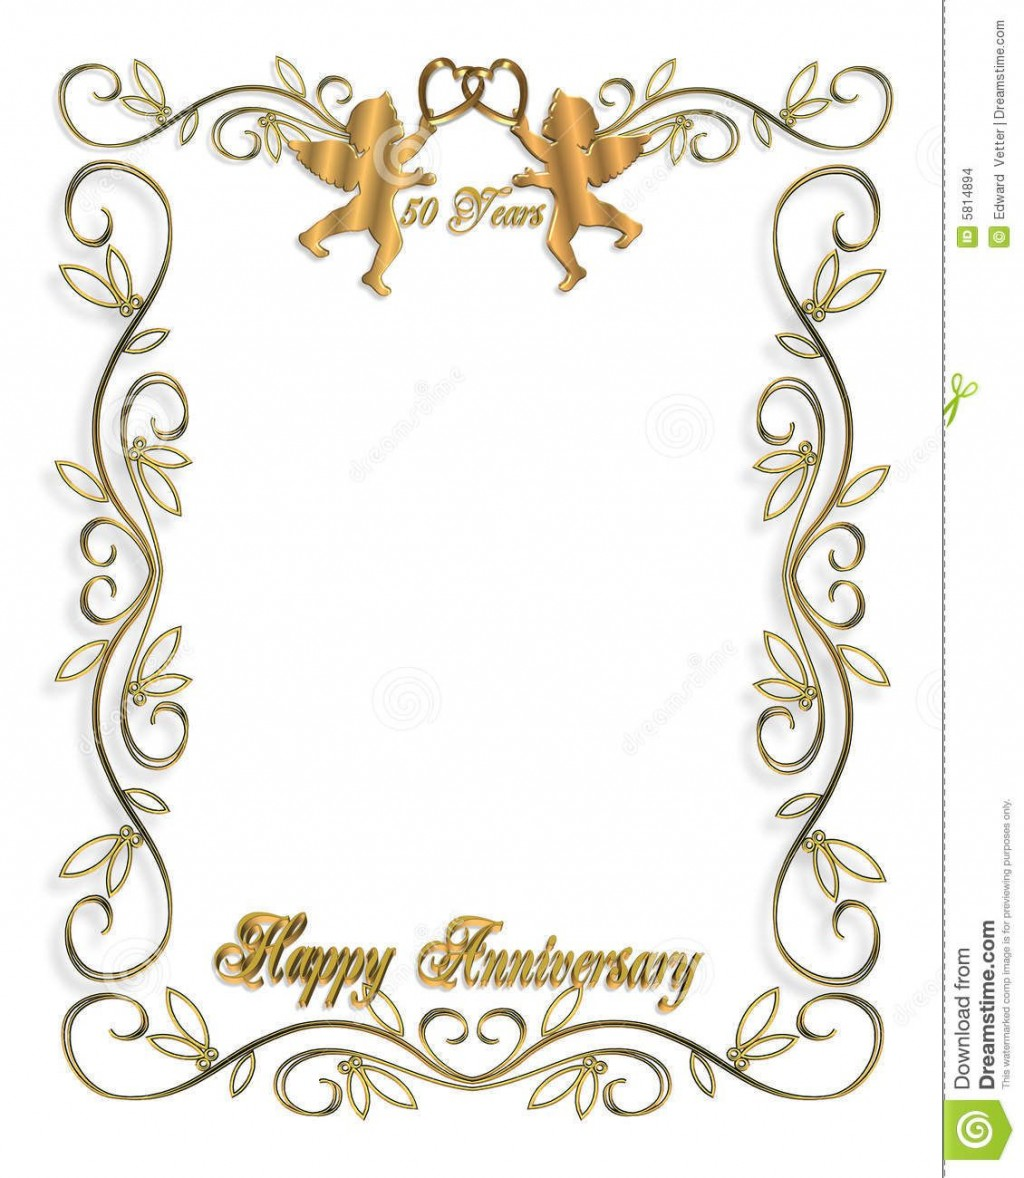 009 Magnificent Golden Wedding Anniversary Invitation Template Free Example  50th Microsoft Word DownloadLarge